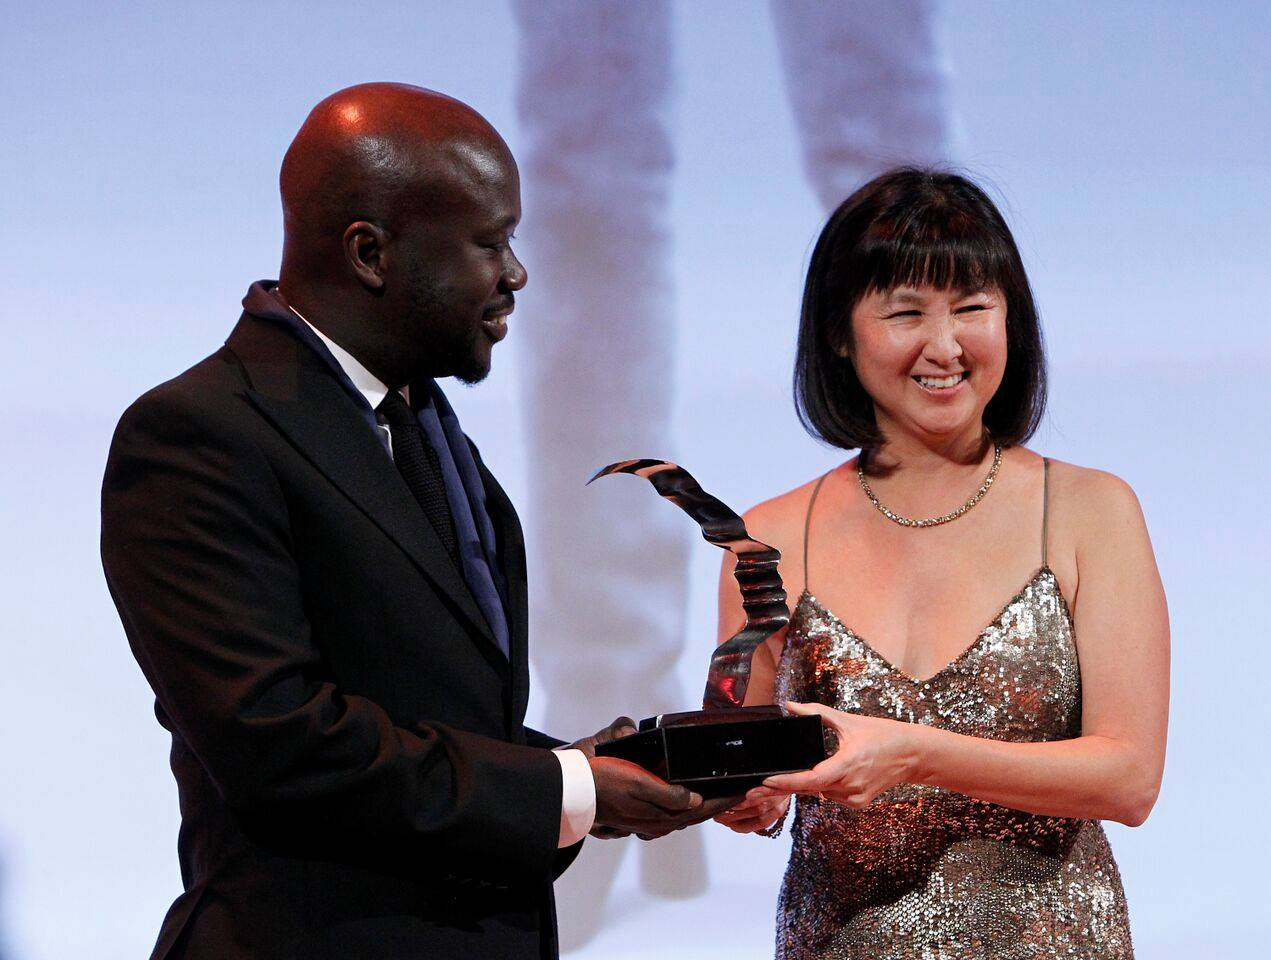 Maya Lin with Prize, 2015